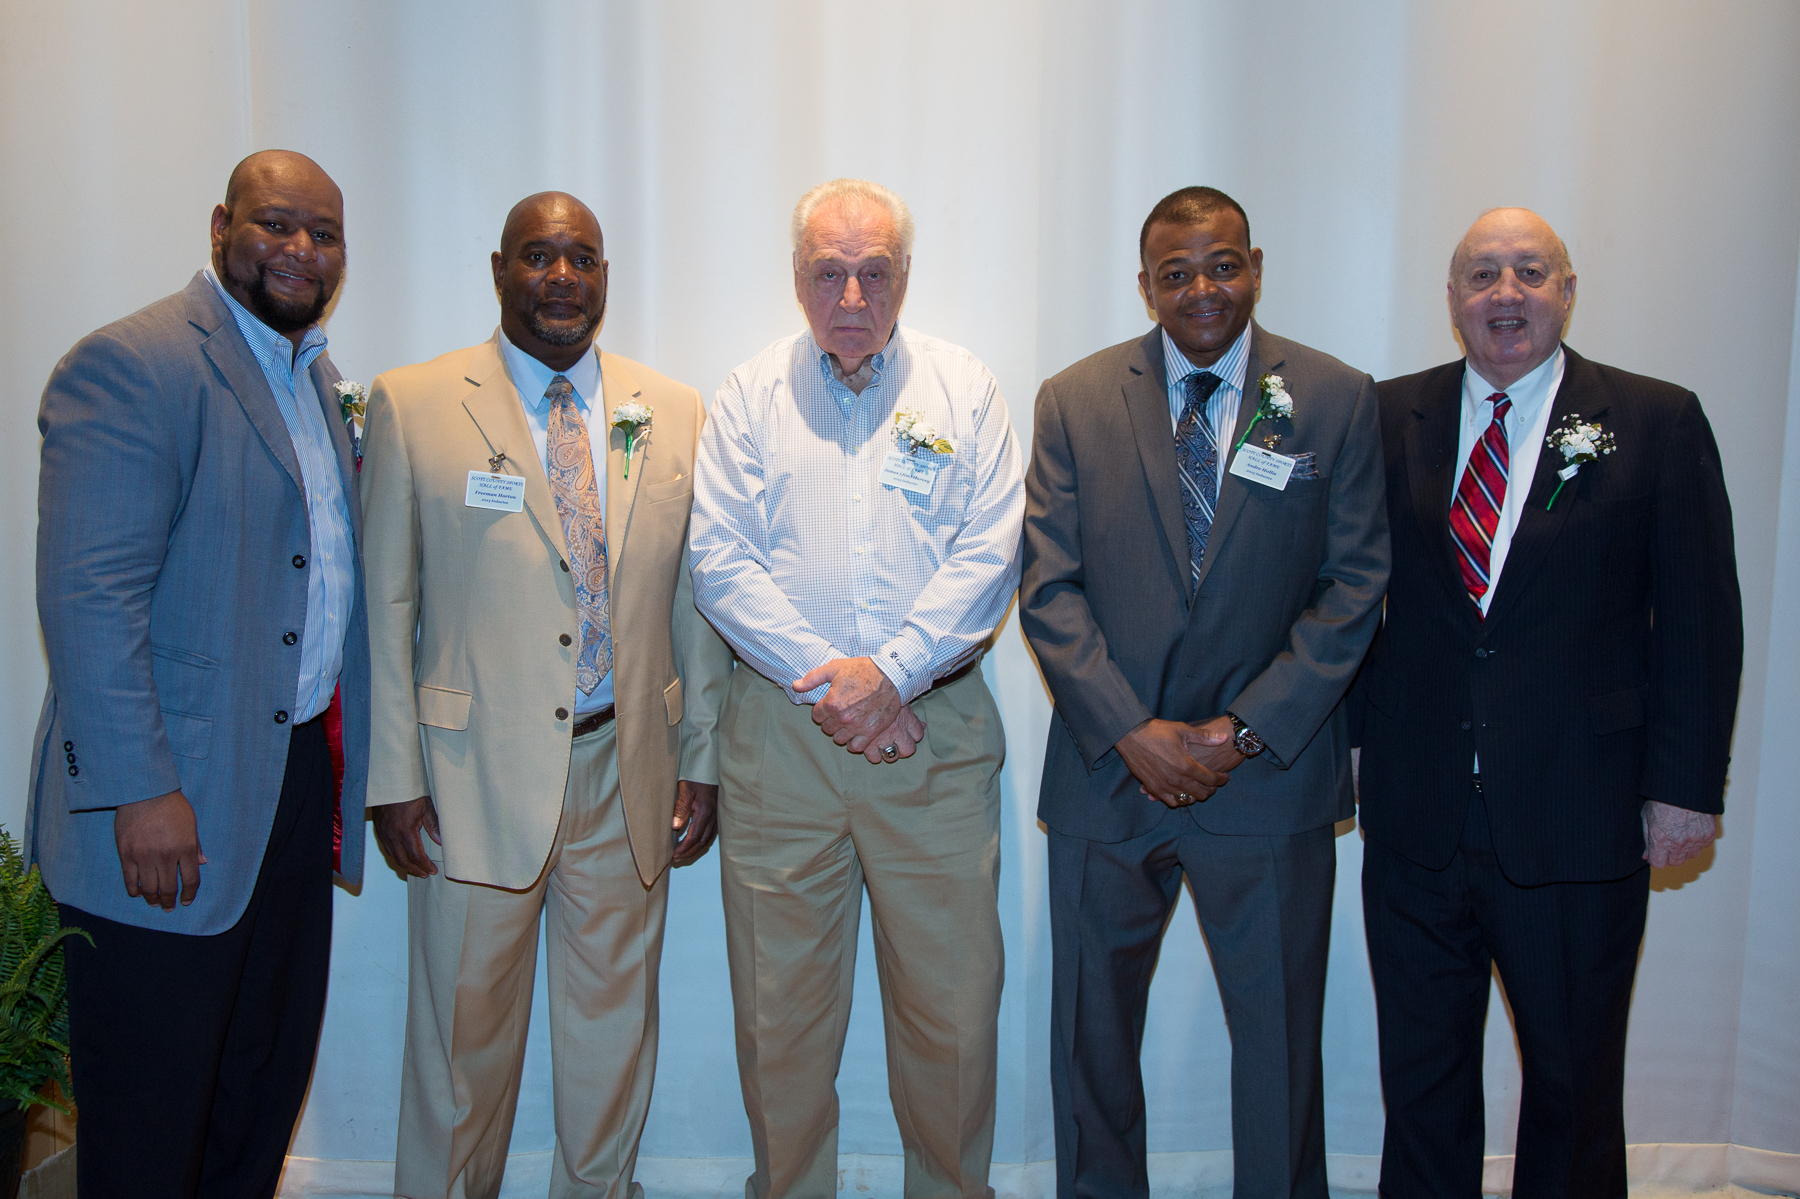 Mississippi scott county sebastopol - Five Ole Miss Alumni Were On Hand To Be Inducted Into The First Class Of The